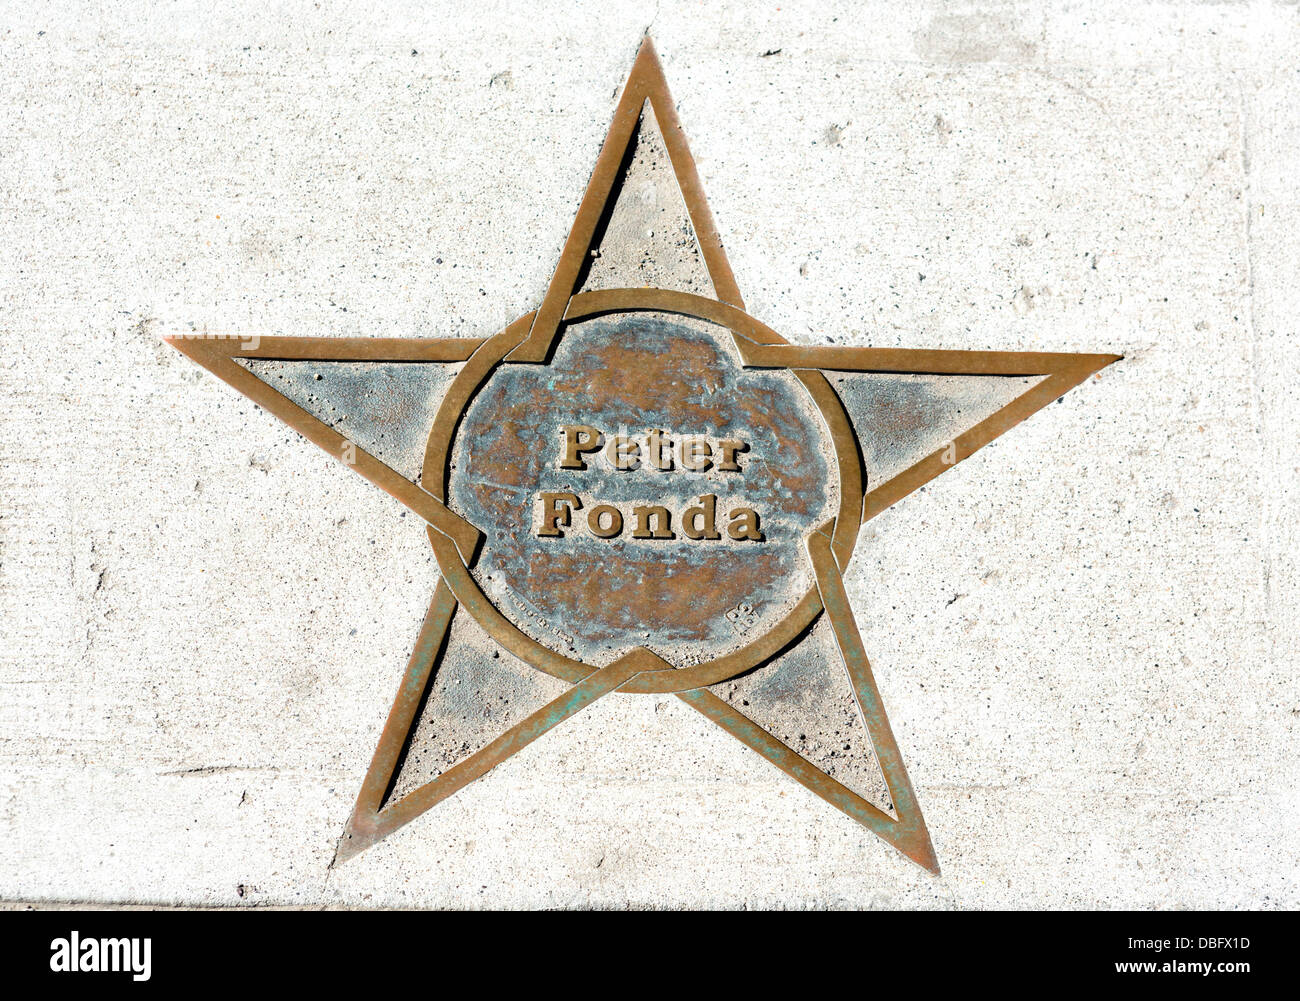 Peter Fonda star on the sidewalk, Main Street, Bozeman, Montana, USA - Stock Image